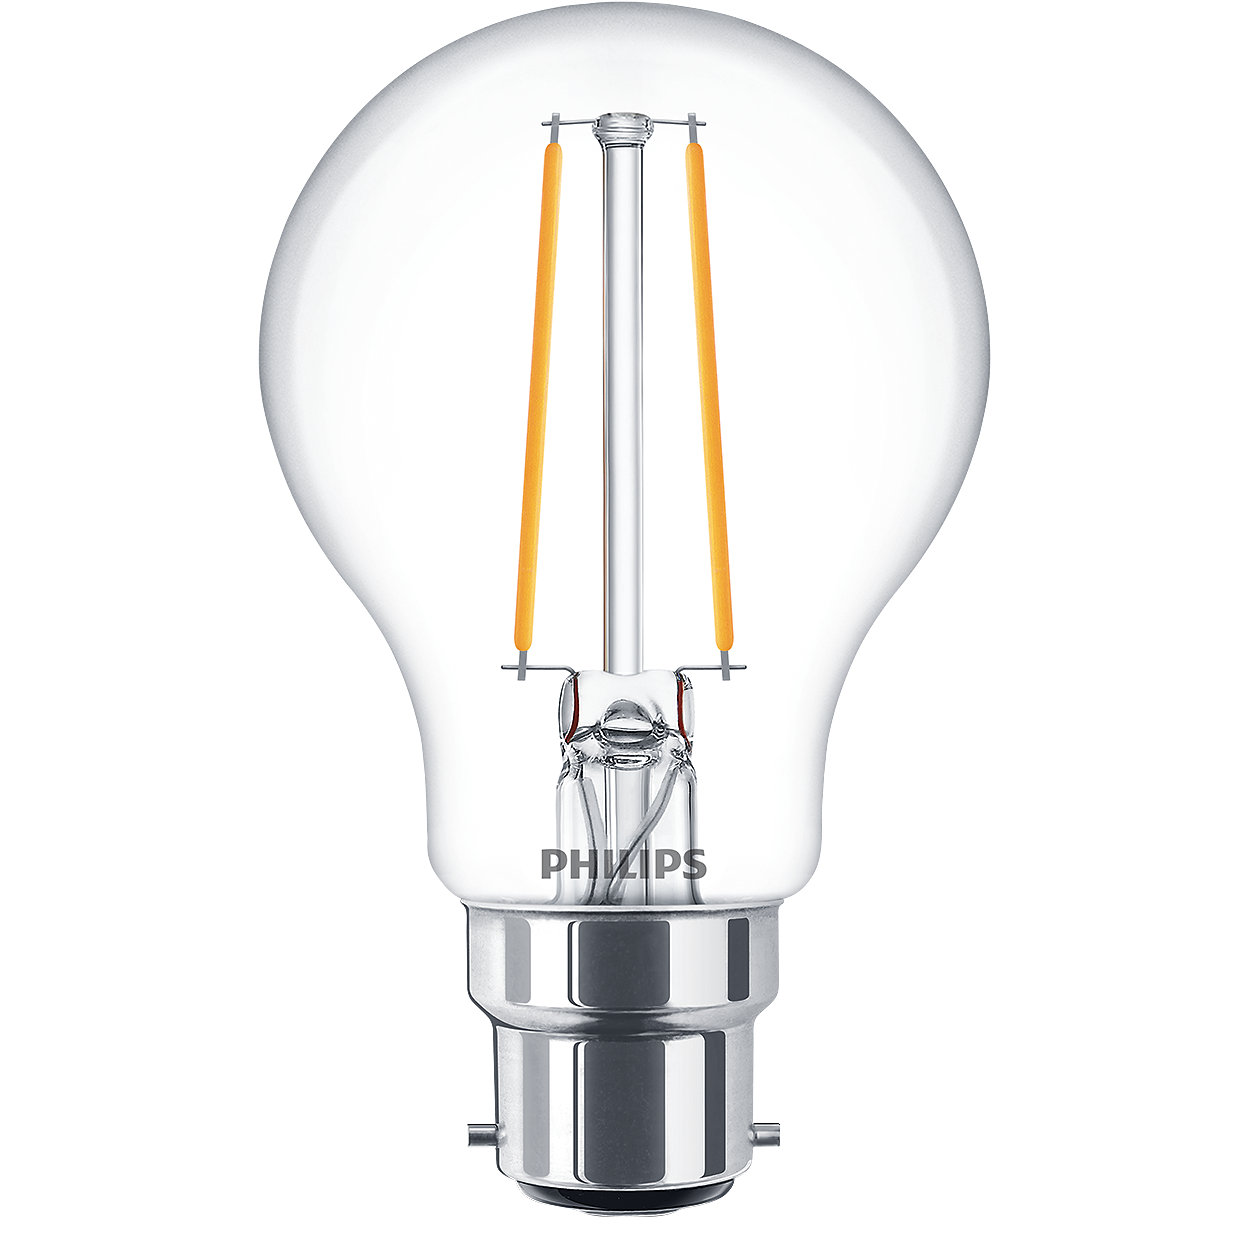 Classic LEDbulbs lamps for decorative lighting